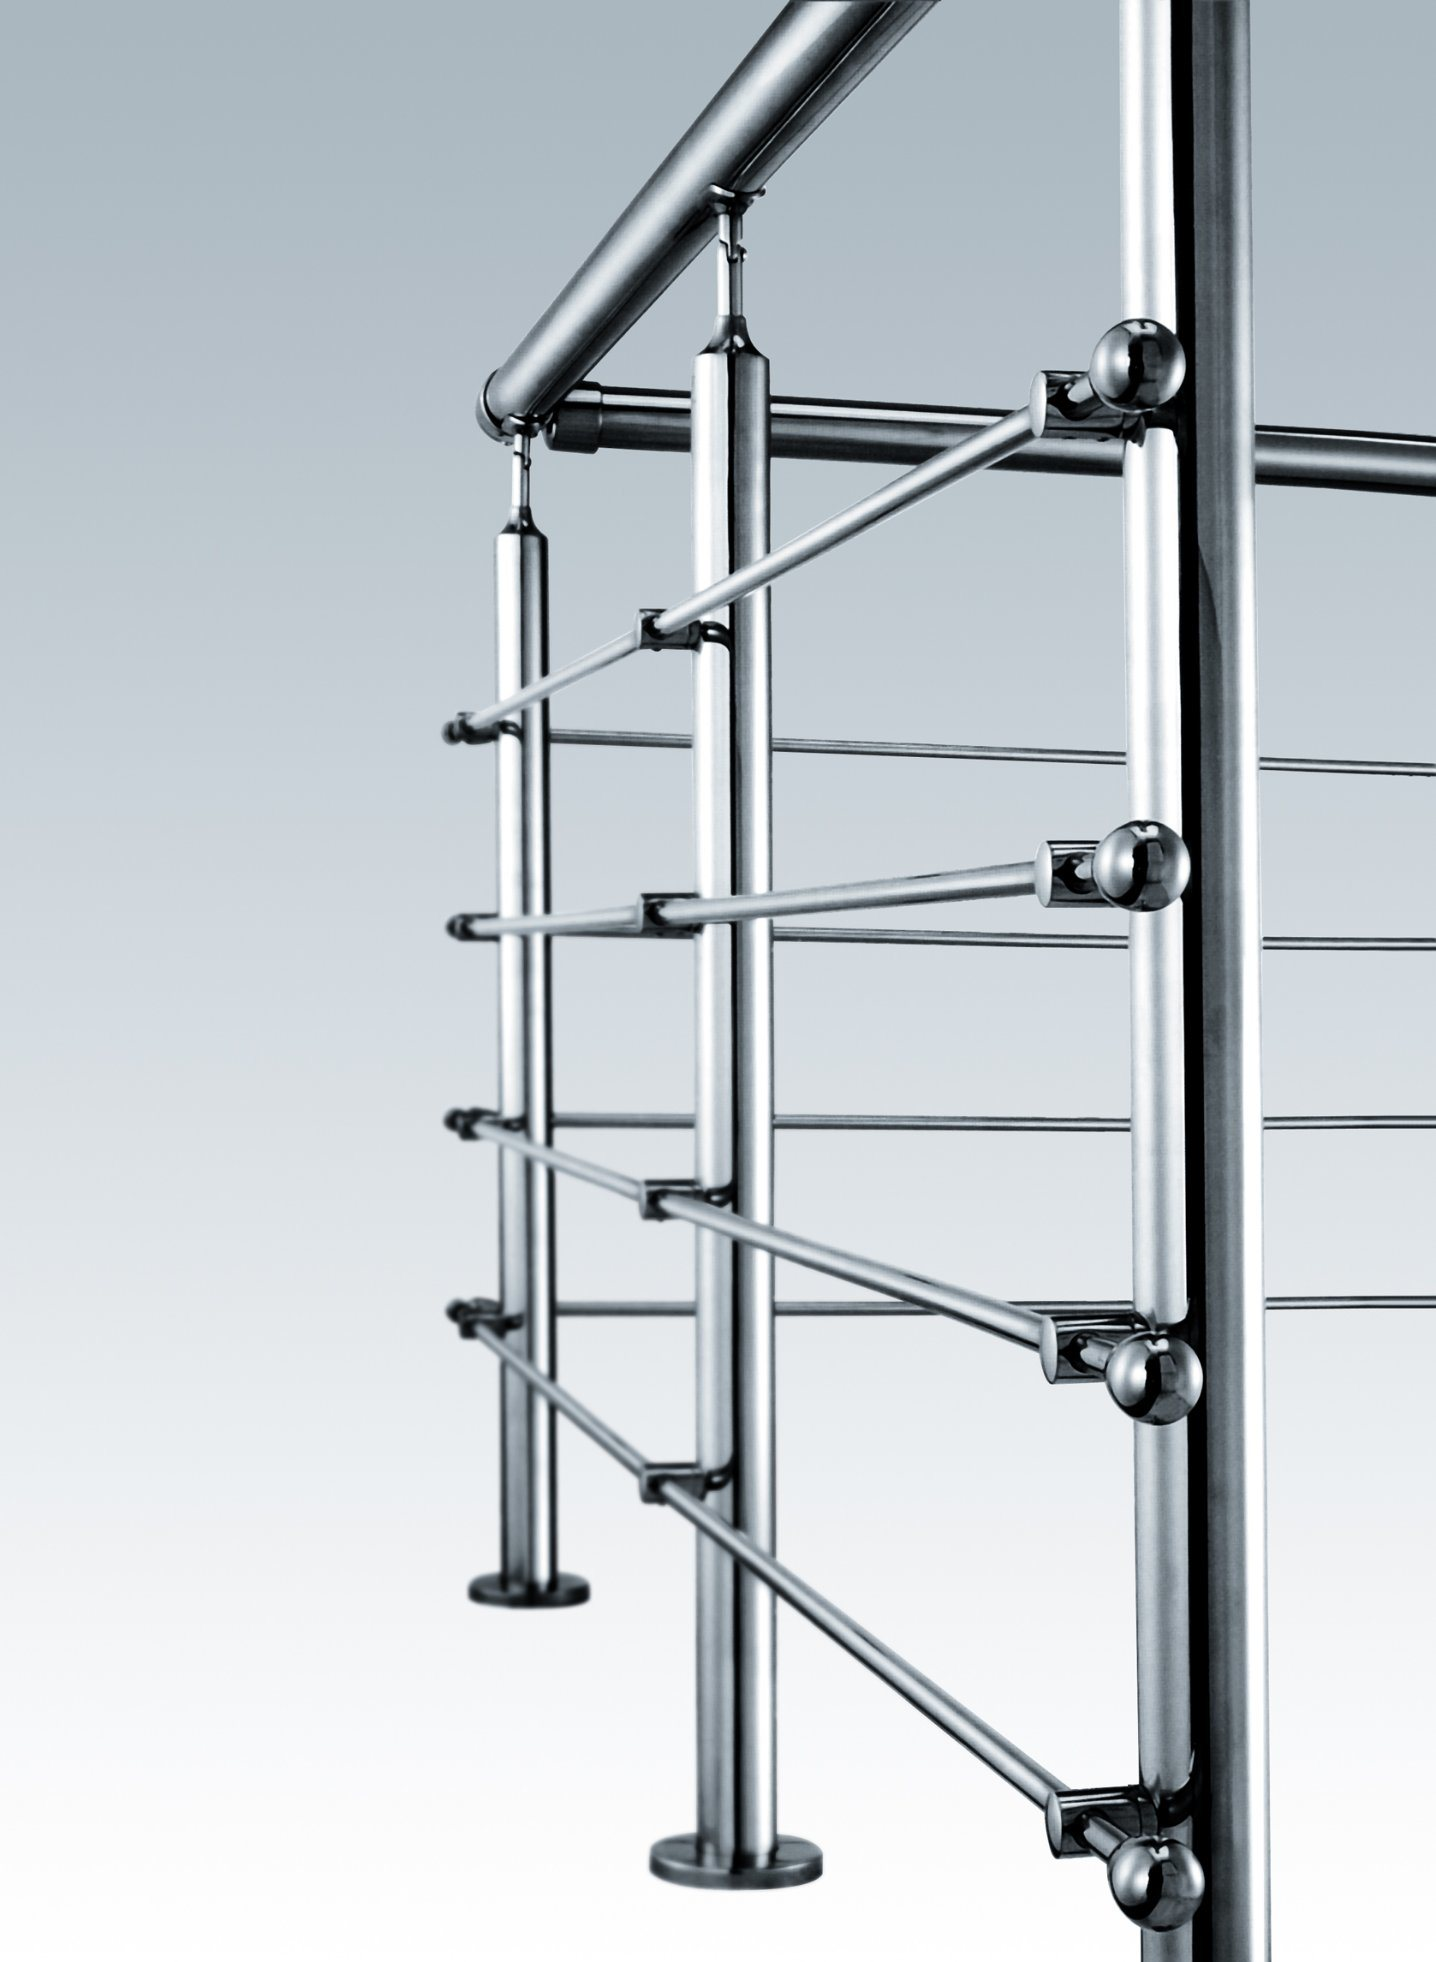 Stainless Handrail Fittings Railing for Shell Cover